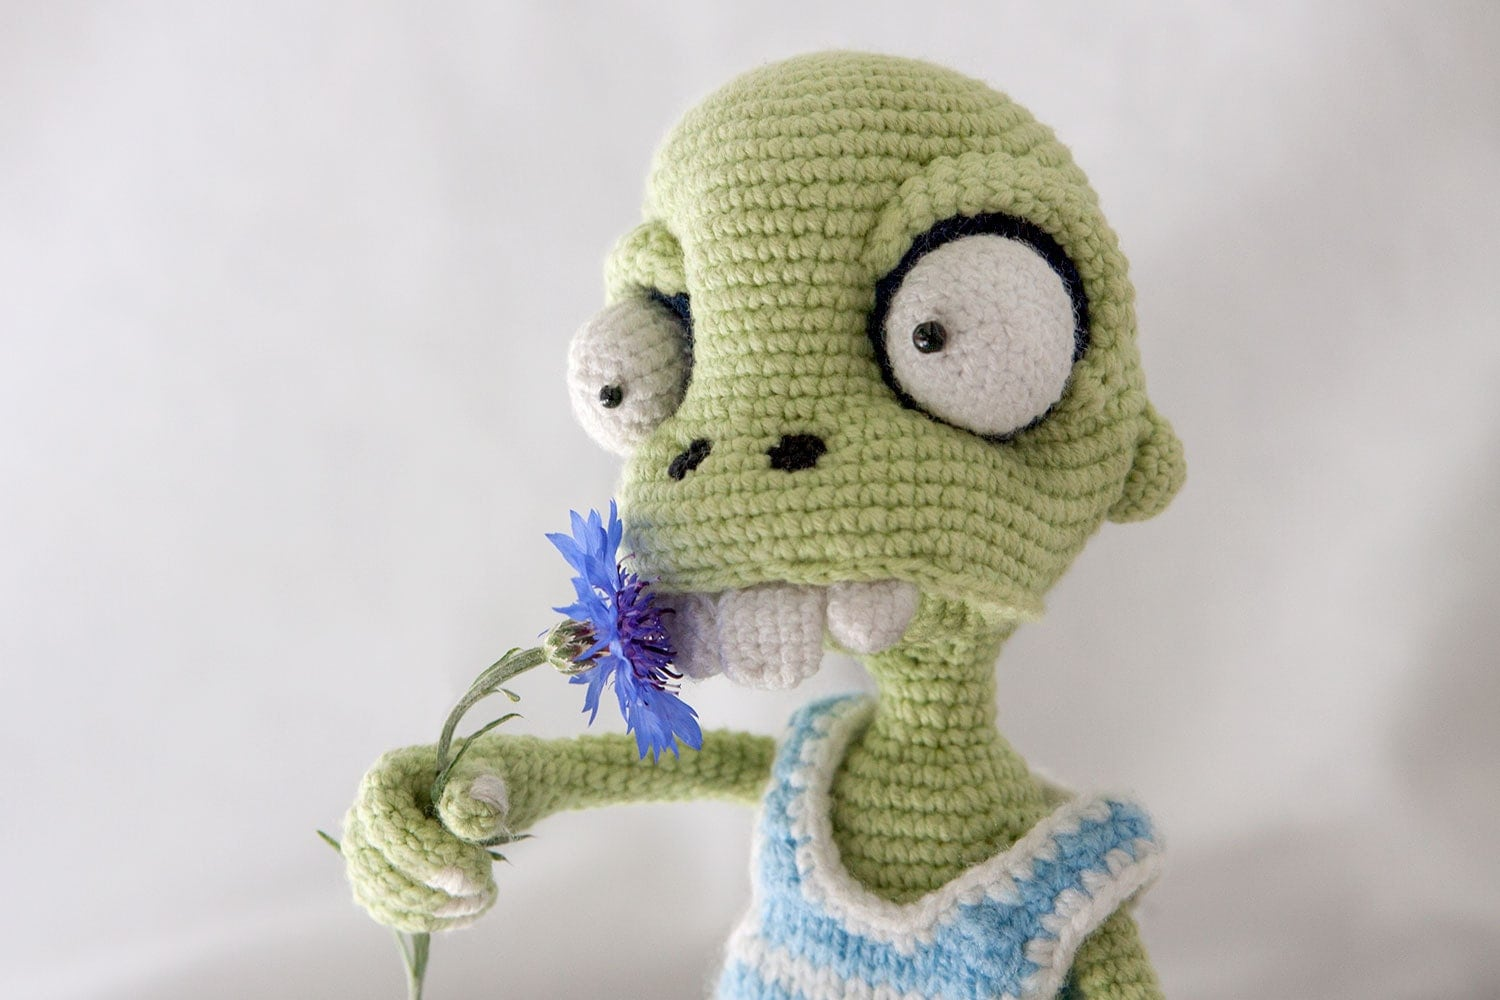 Crochet Zombie Patterns : PATTERN Zombie boy crochet pattern amigurumi pattern pdf